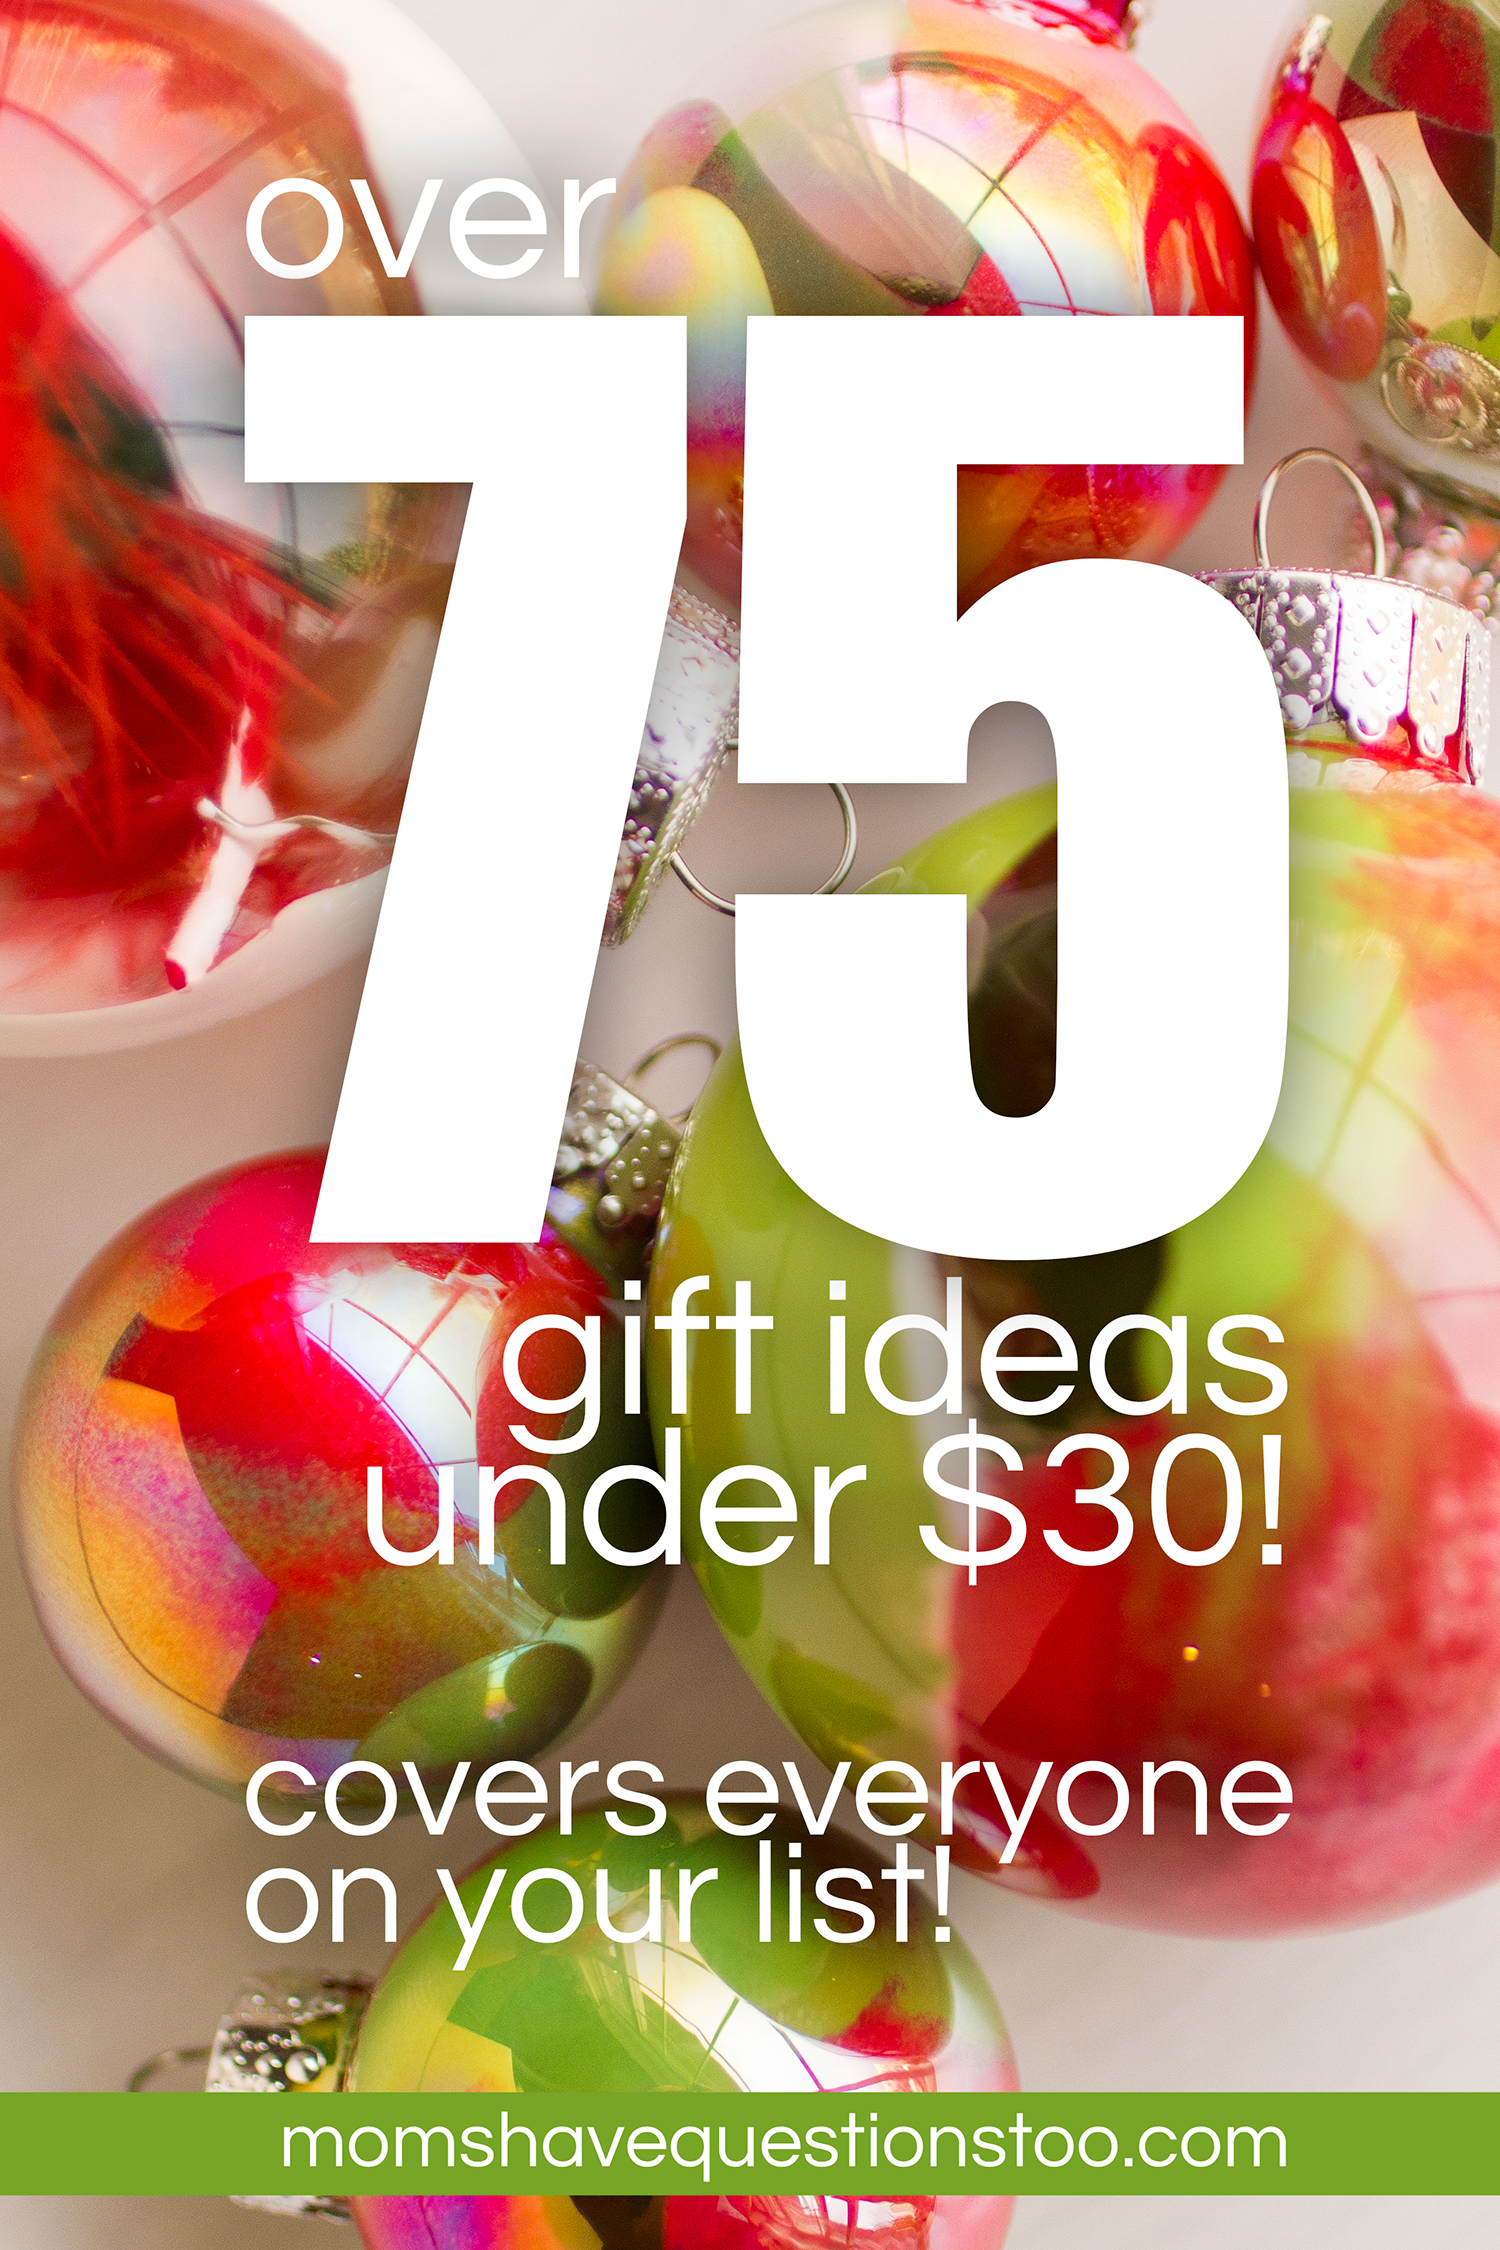 Over 75 Gift Ideas Under $30! - Moms Have Questions Too